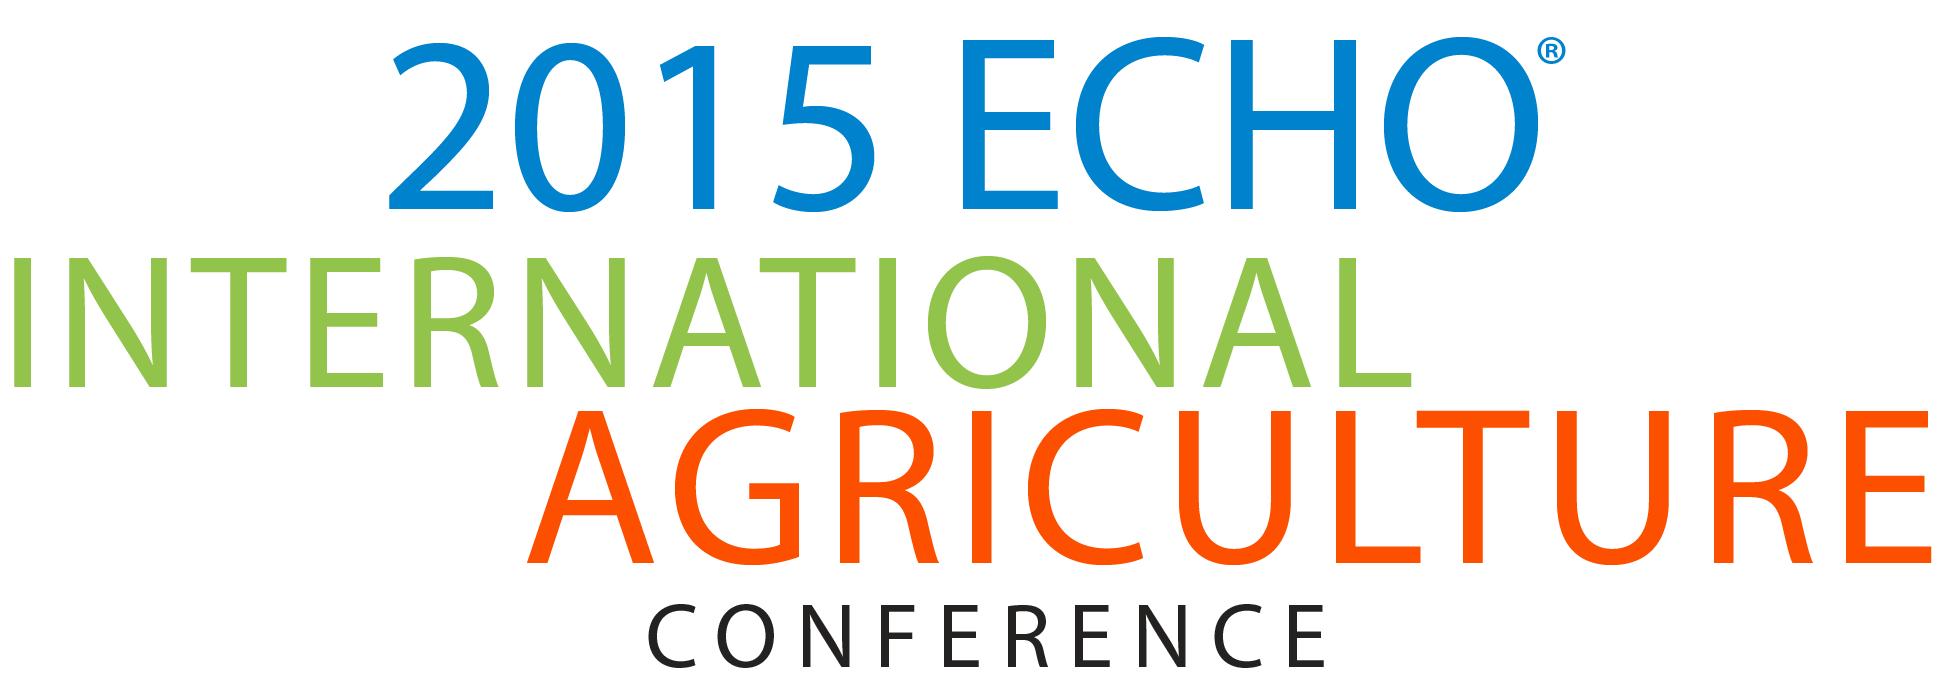 Announcing the 2015 ECHO International Agriculture Conference